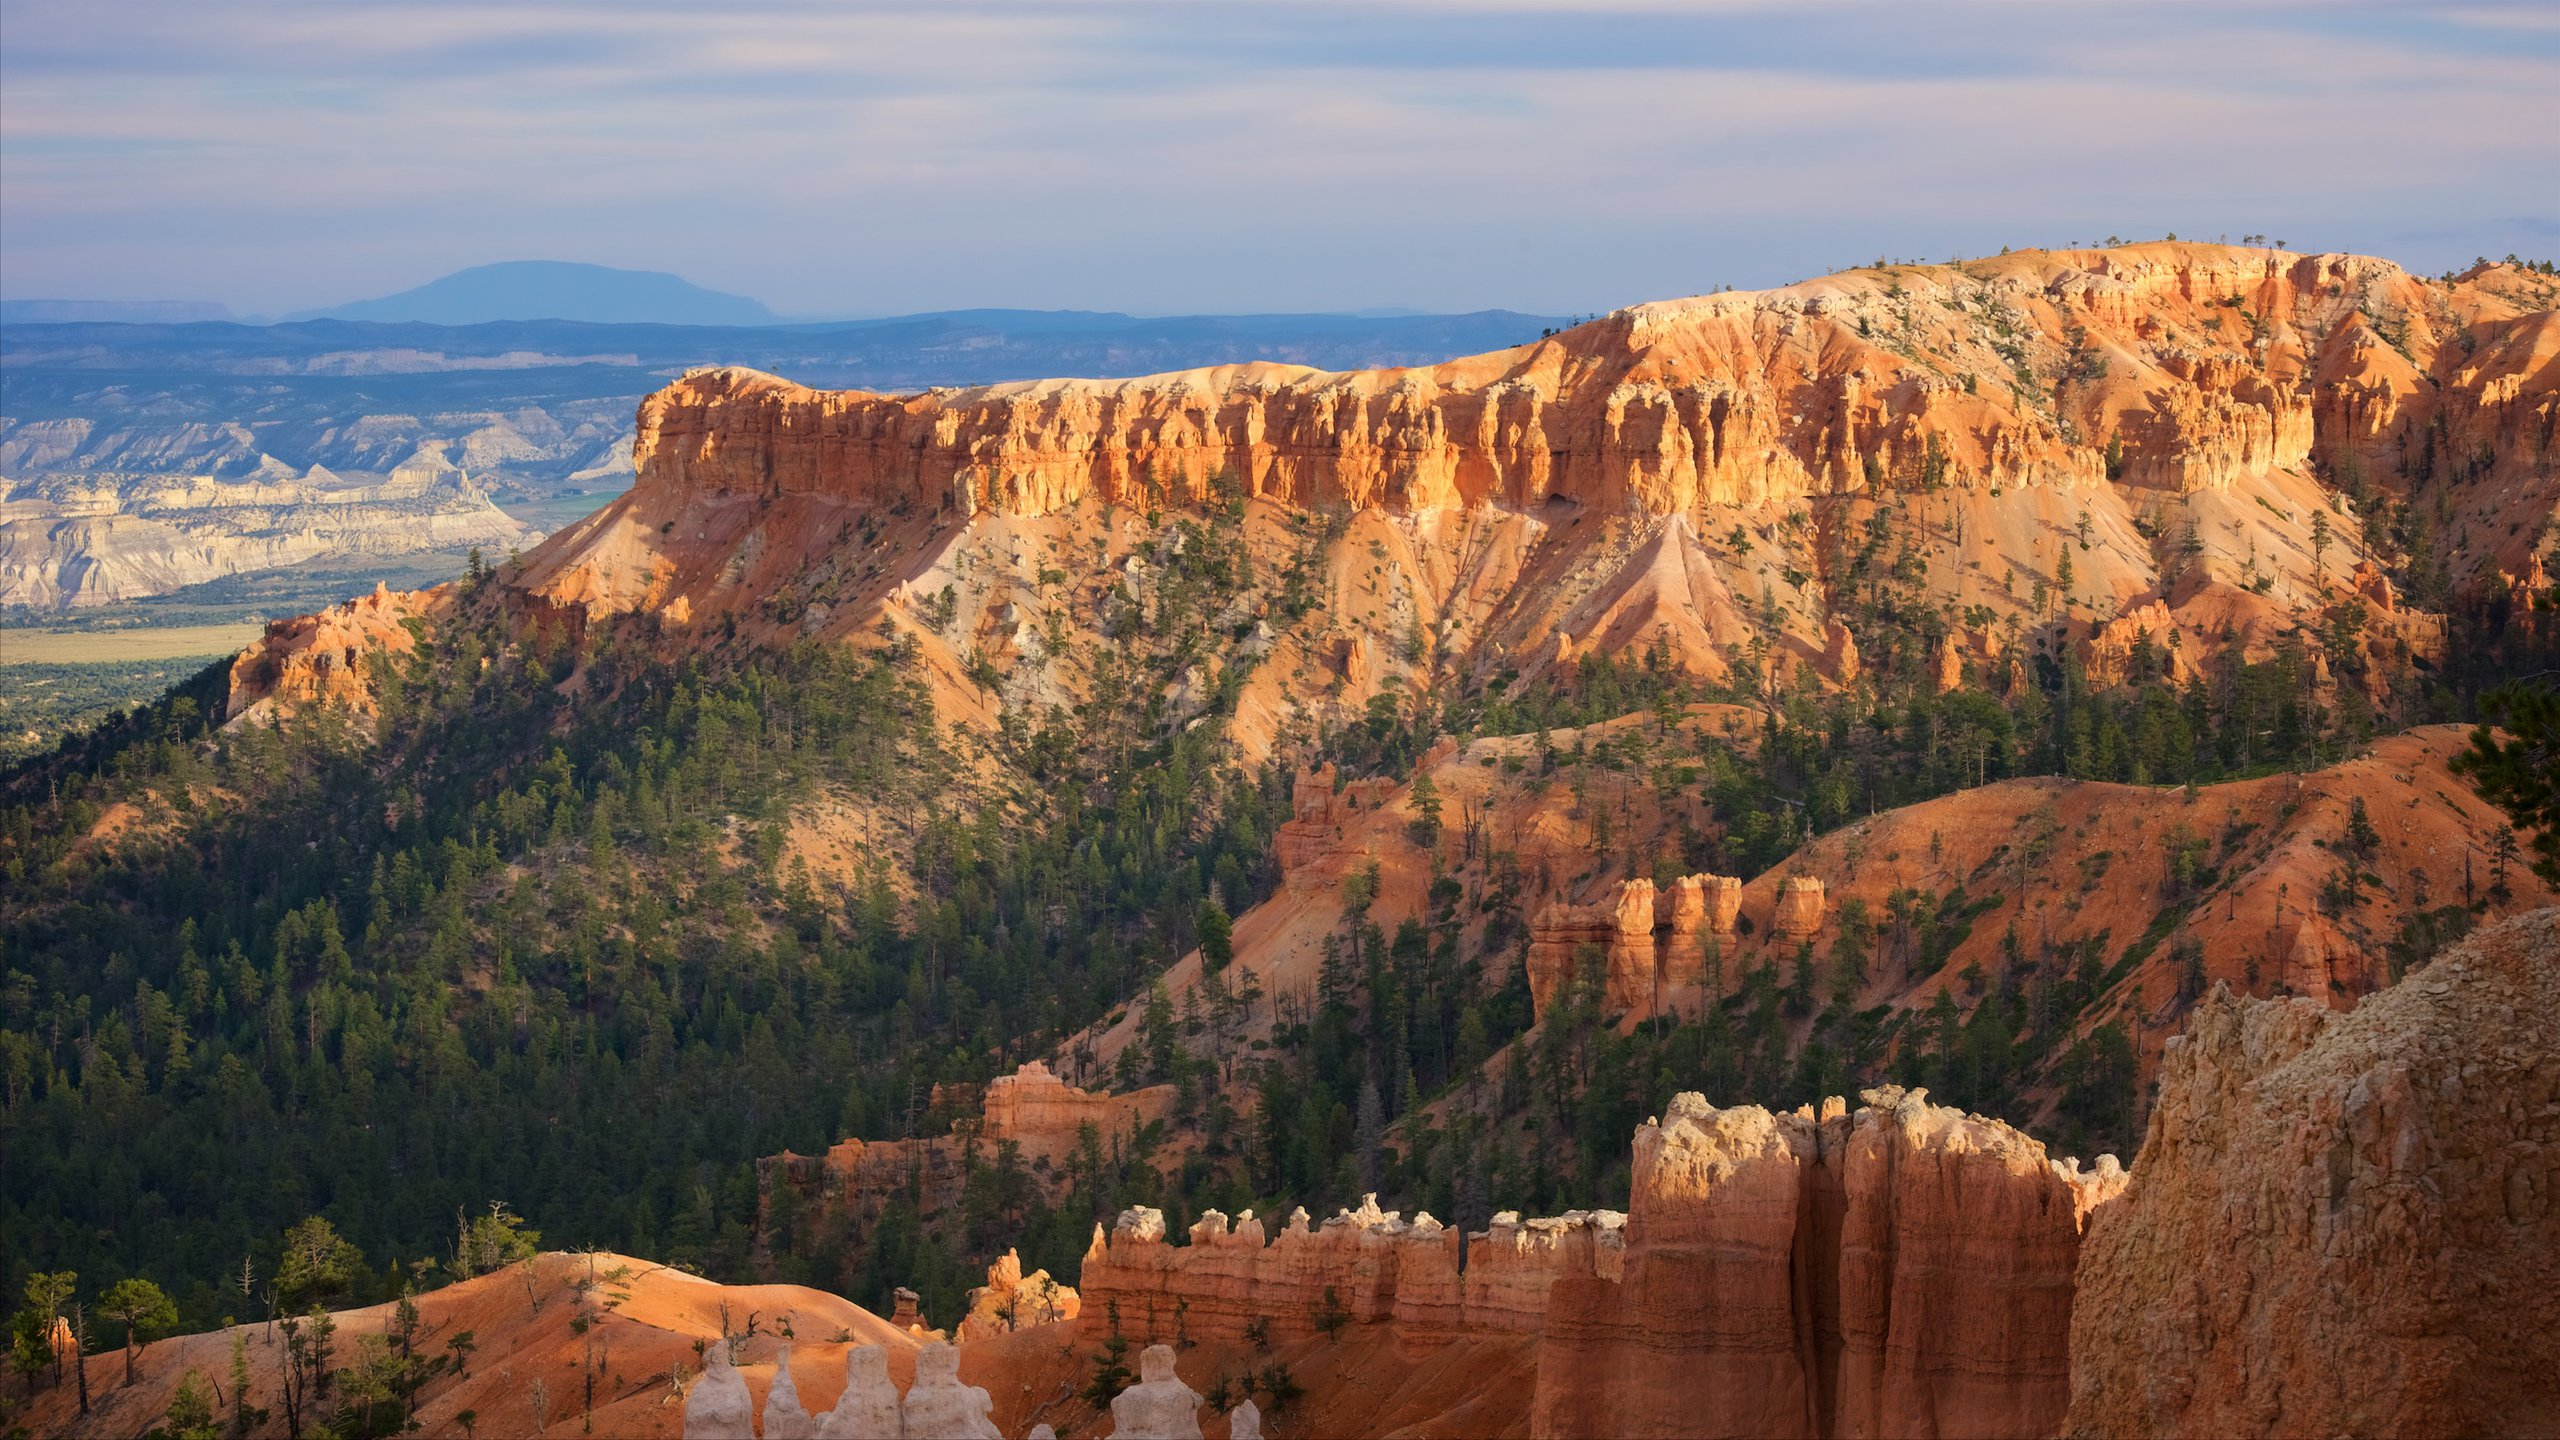 Explore the spectacular viewpoint between Inspiration and Sunrise points and see the Bryce Canyon amphitheater in all its brilliant colors.